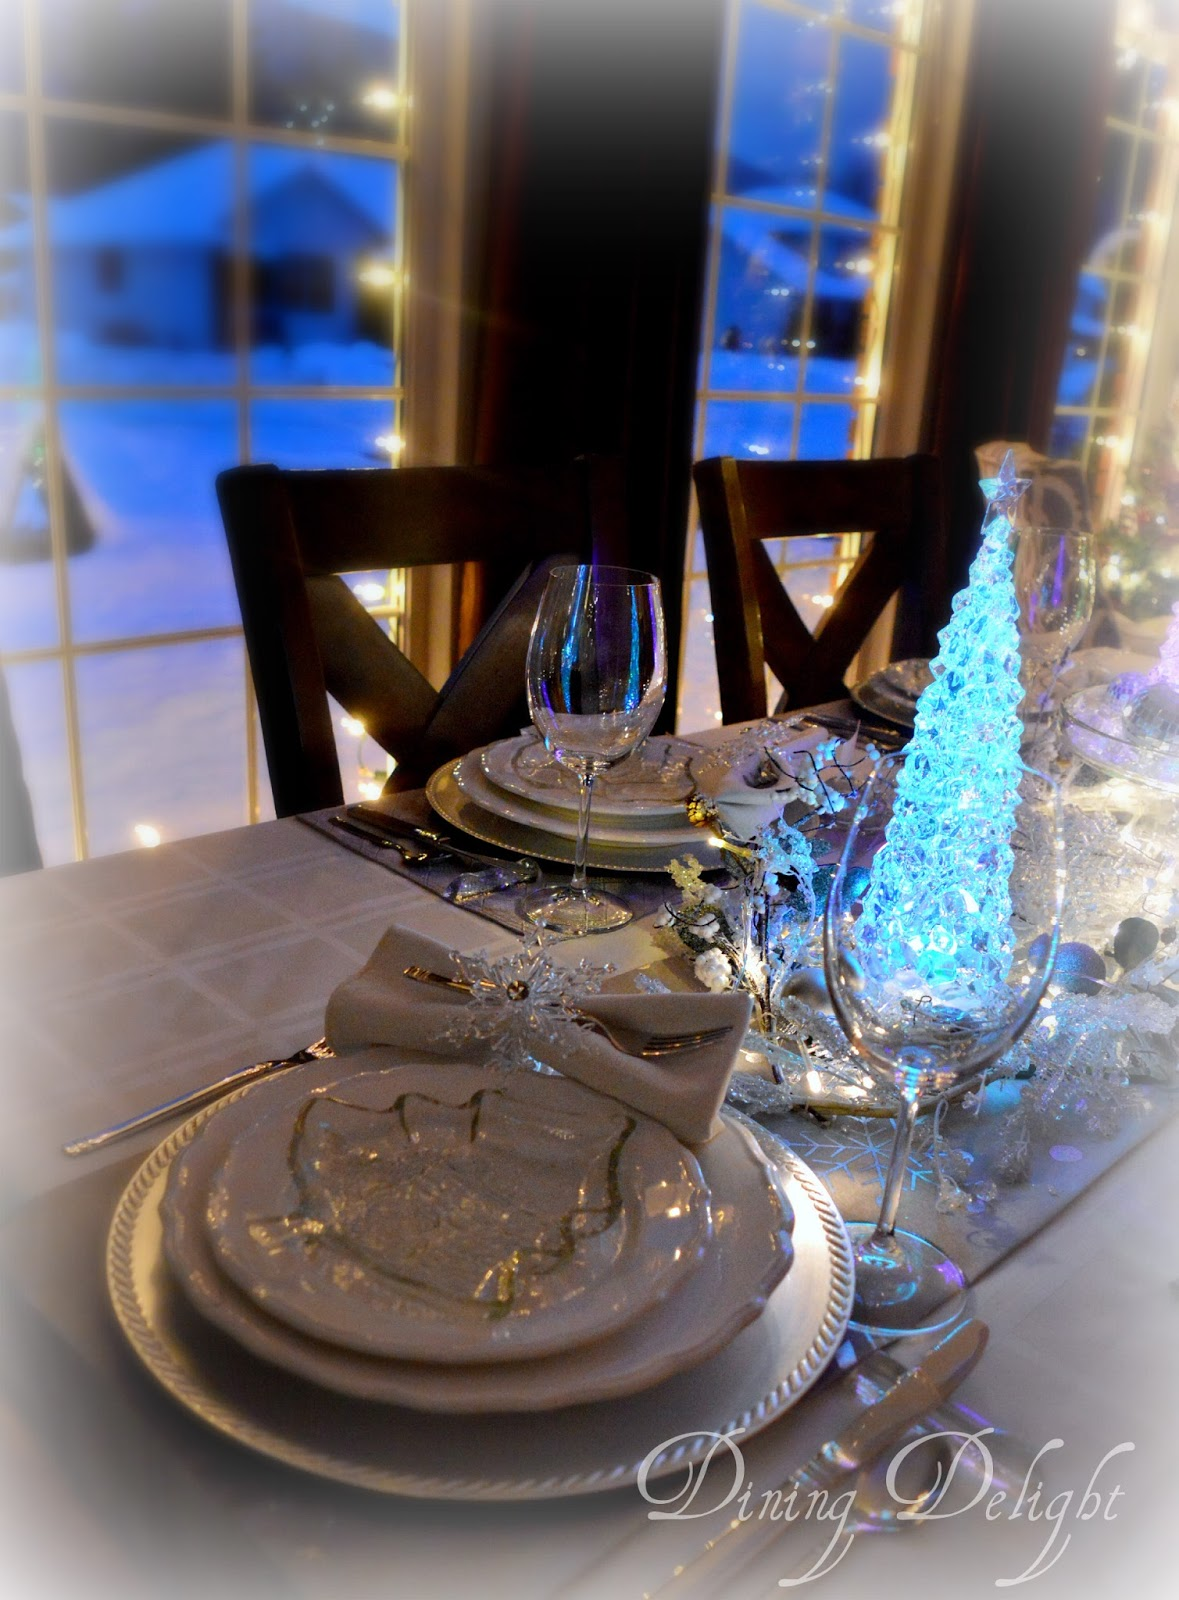 Dining Delight: Frost & Ice Christmas Tablescape